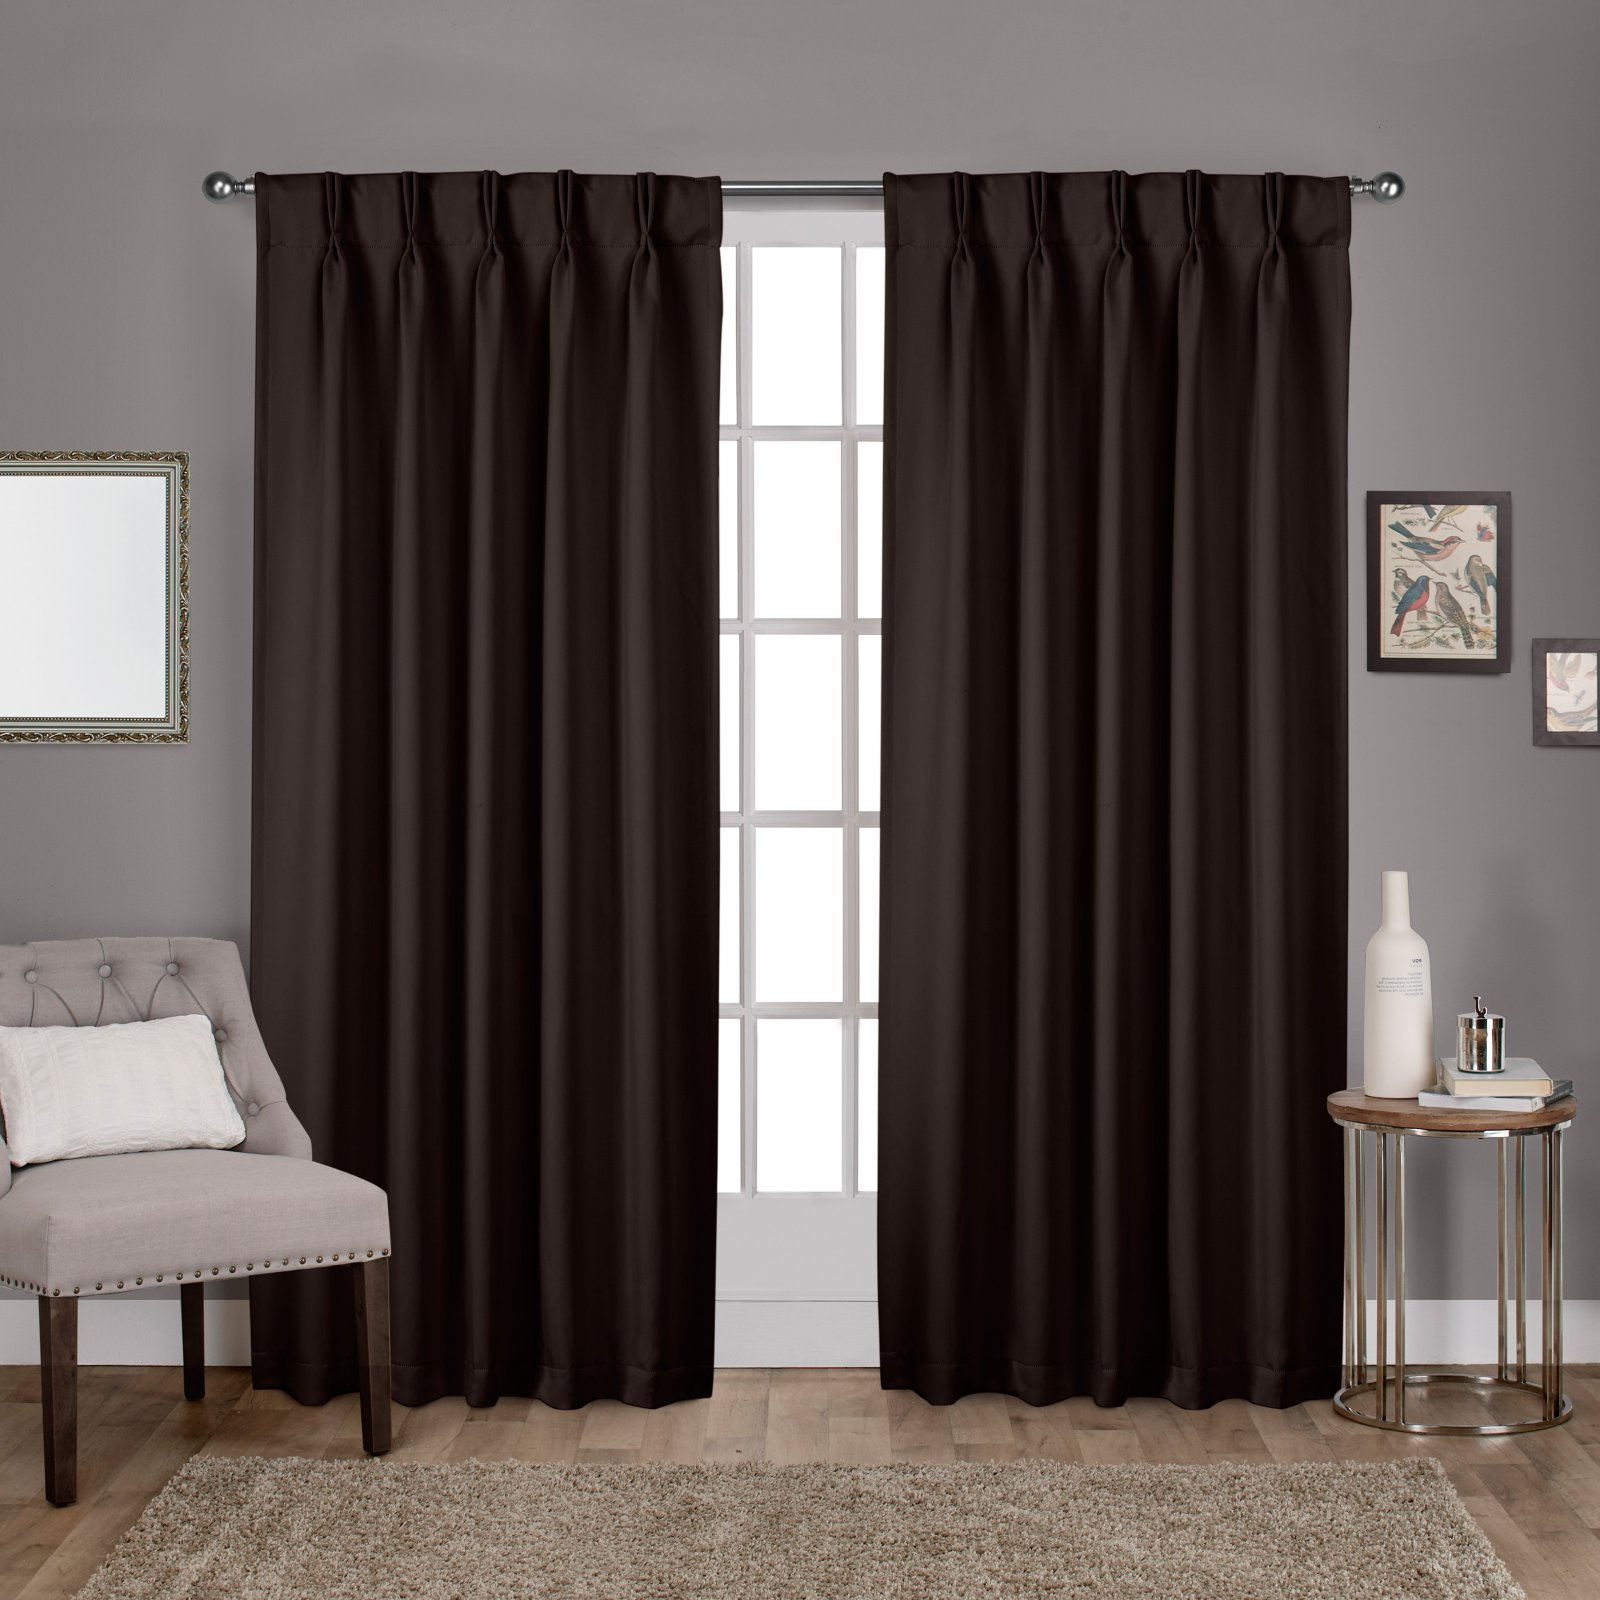 Exclusive Home Curtains 2 Pack Sateen Woven Blackout Pinch Pleat Curtain  Panels With Most Current Double Pinch Pleat Top Curtain Panel Pairs (Gallery 16 of 20)